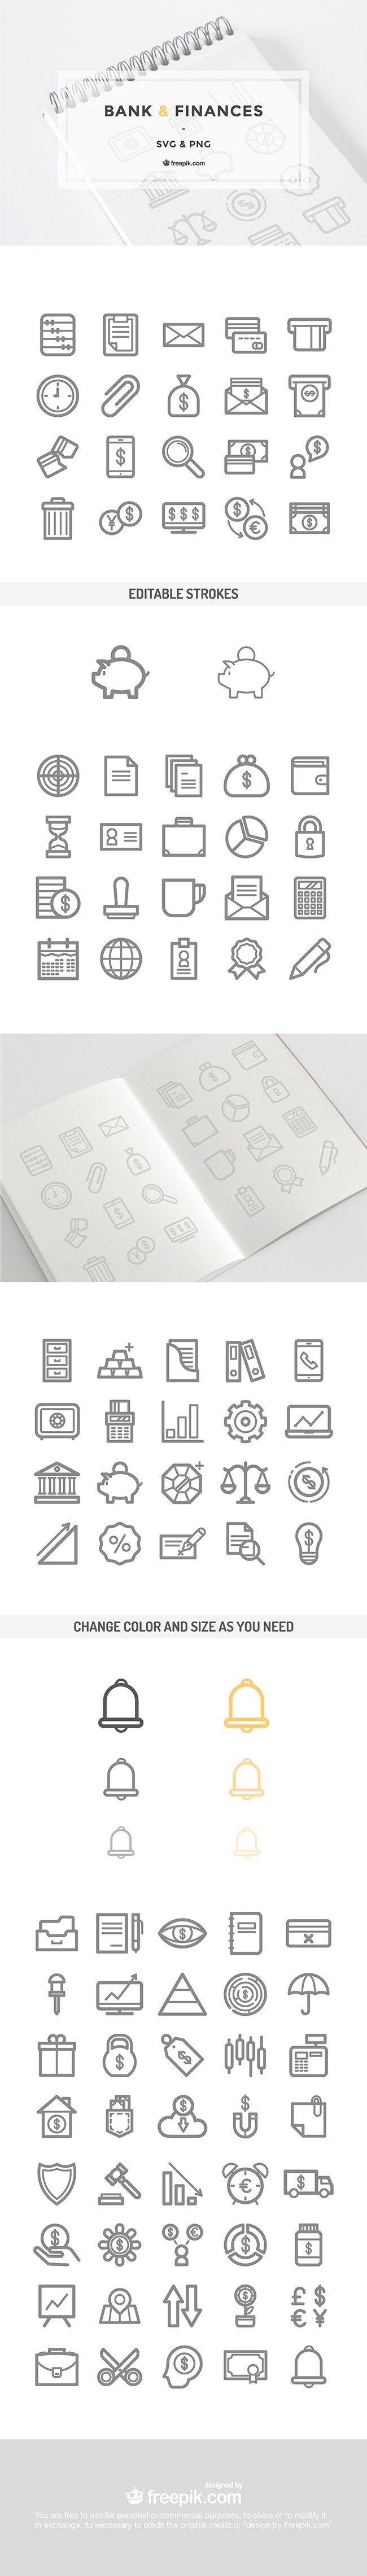 Bank finances icons 01 80 free bank and finances icons SVG & PNG set